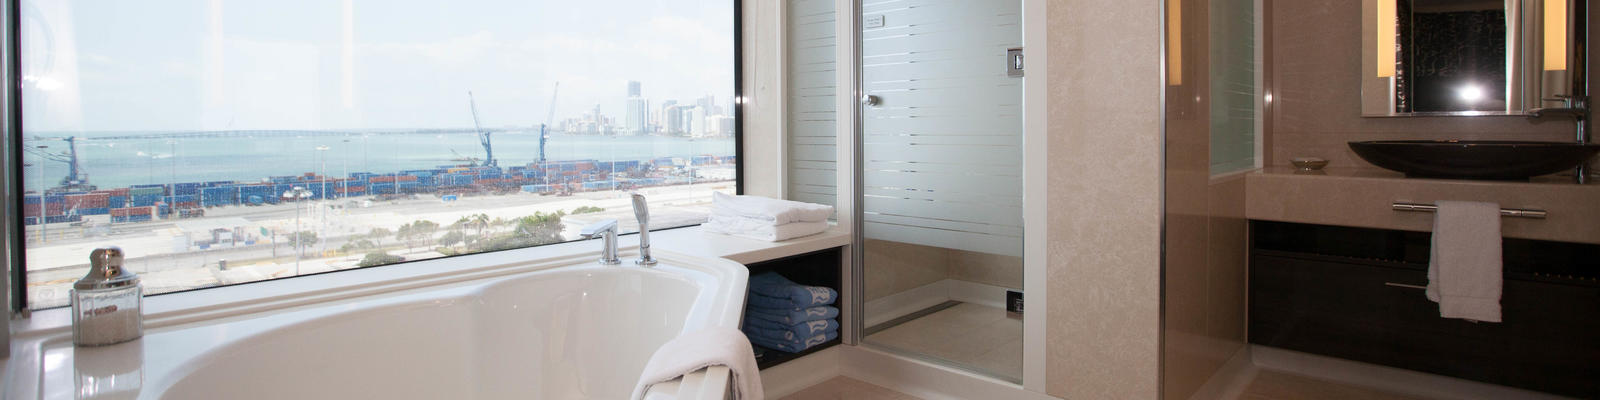 10 Signs You Should Upgrade Your Cruise Cabin (Photo: Cruise Critic)